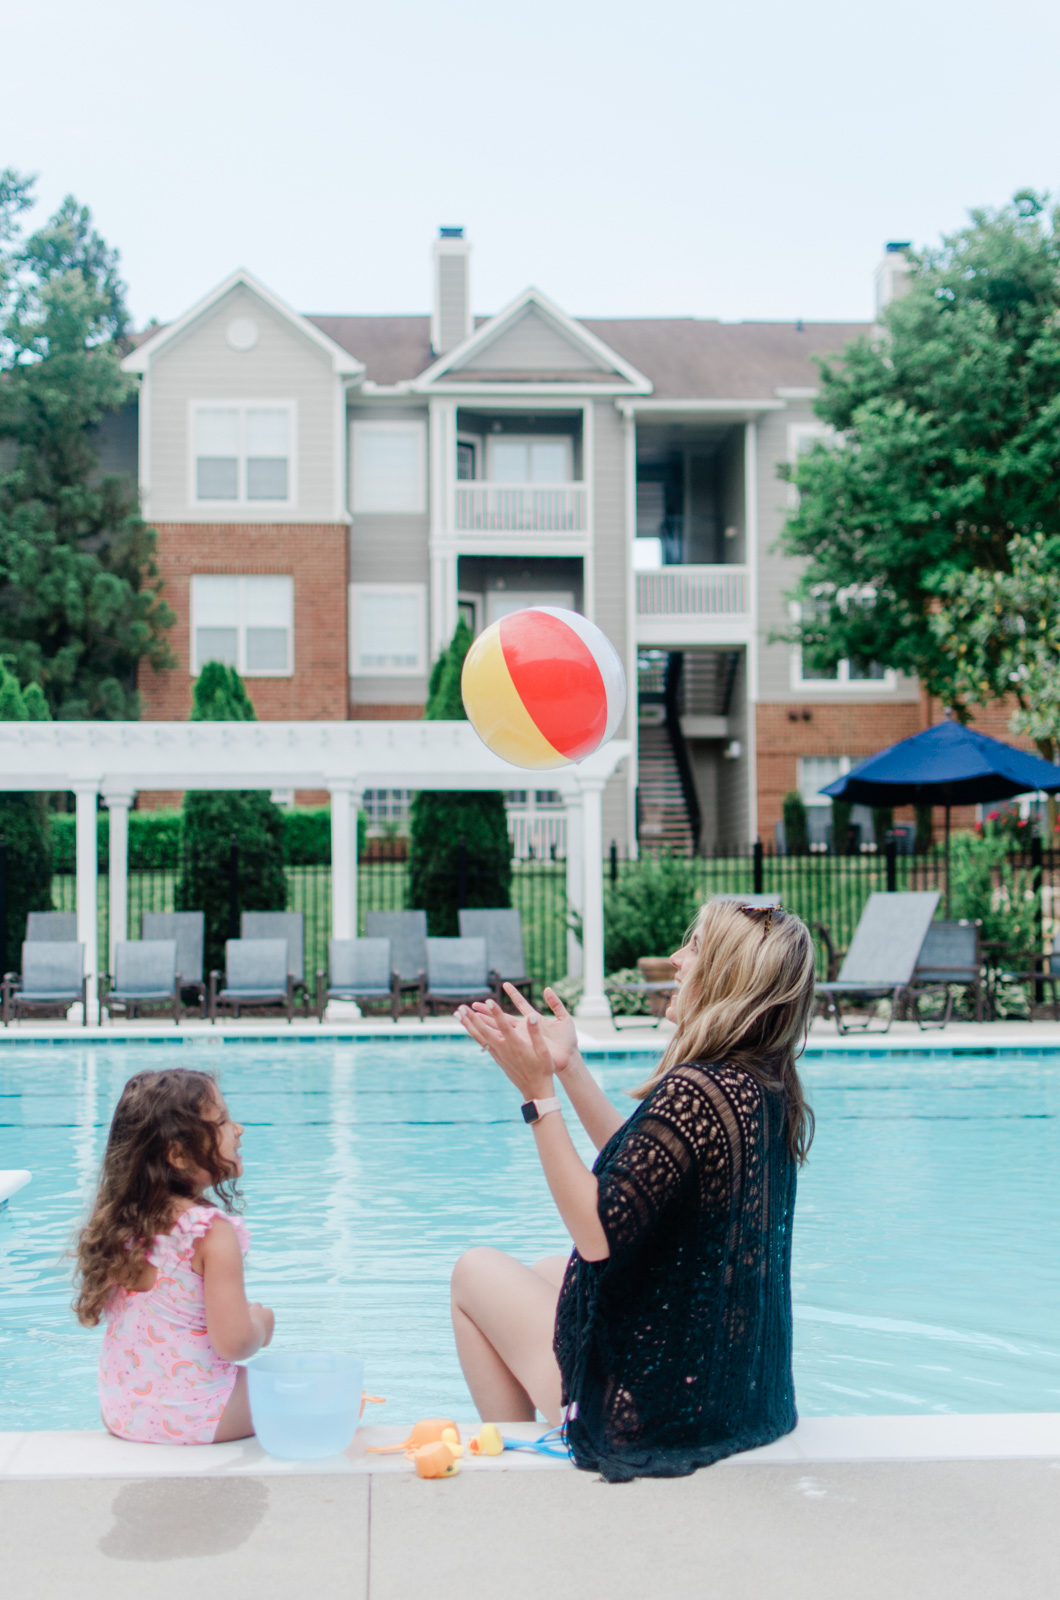 Richmond Virginia blogger, Lauren Dix, shares her visit to local Richmond apartment complex The Grove at Swift Creek.